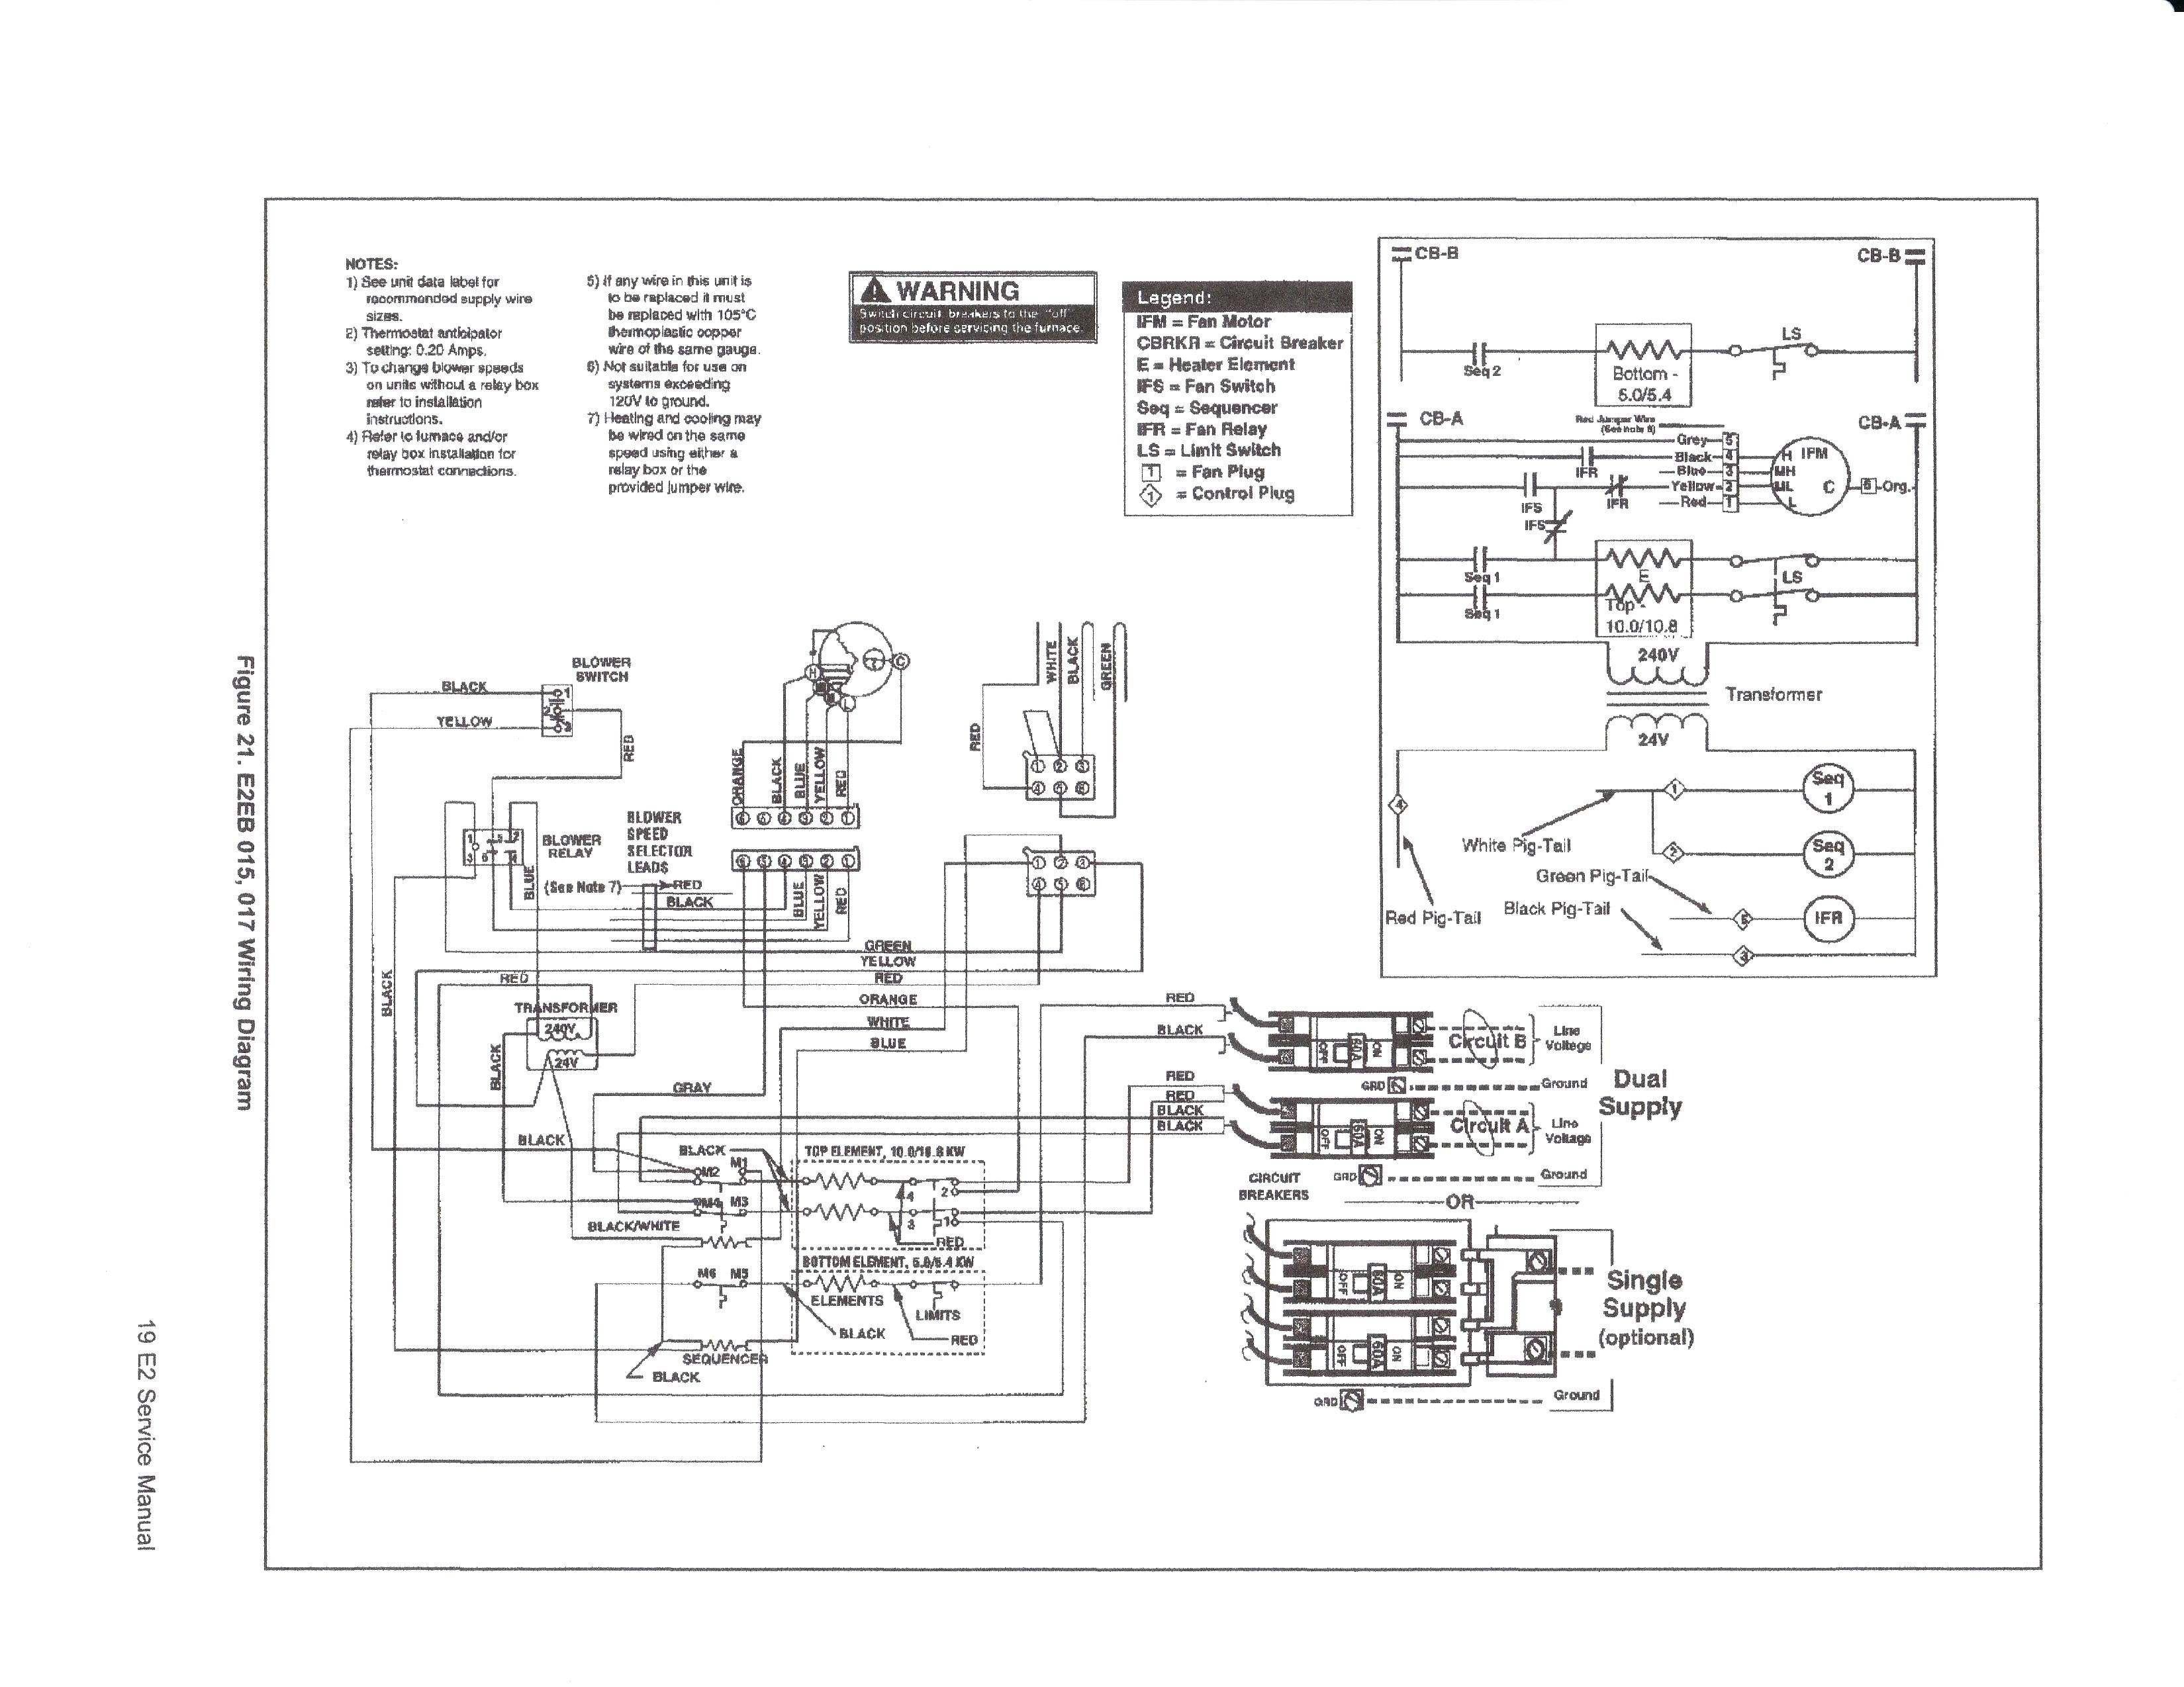 Furnace Sequencer Diagram